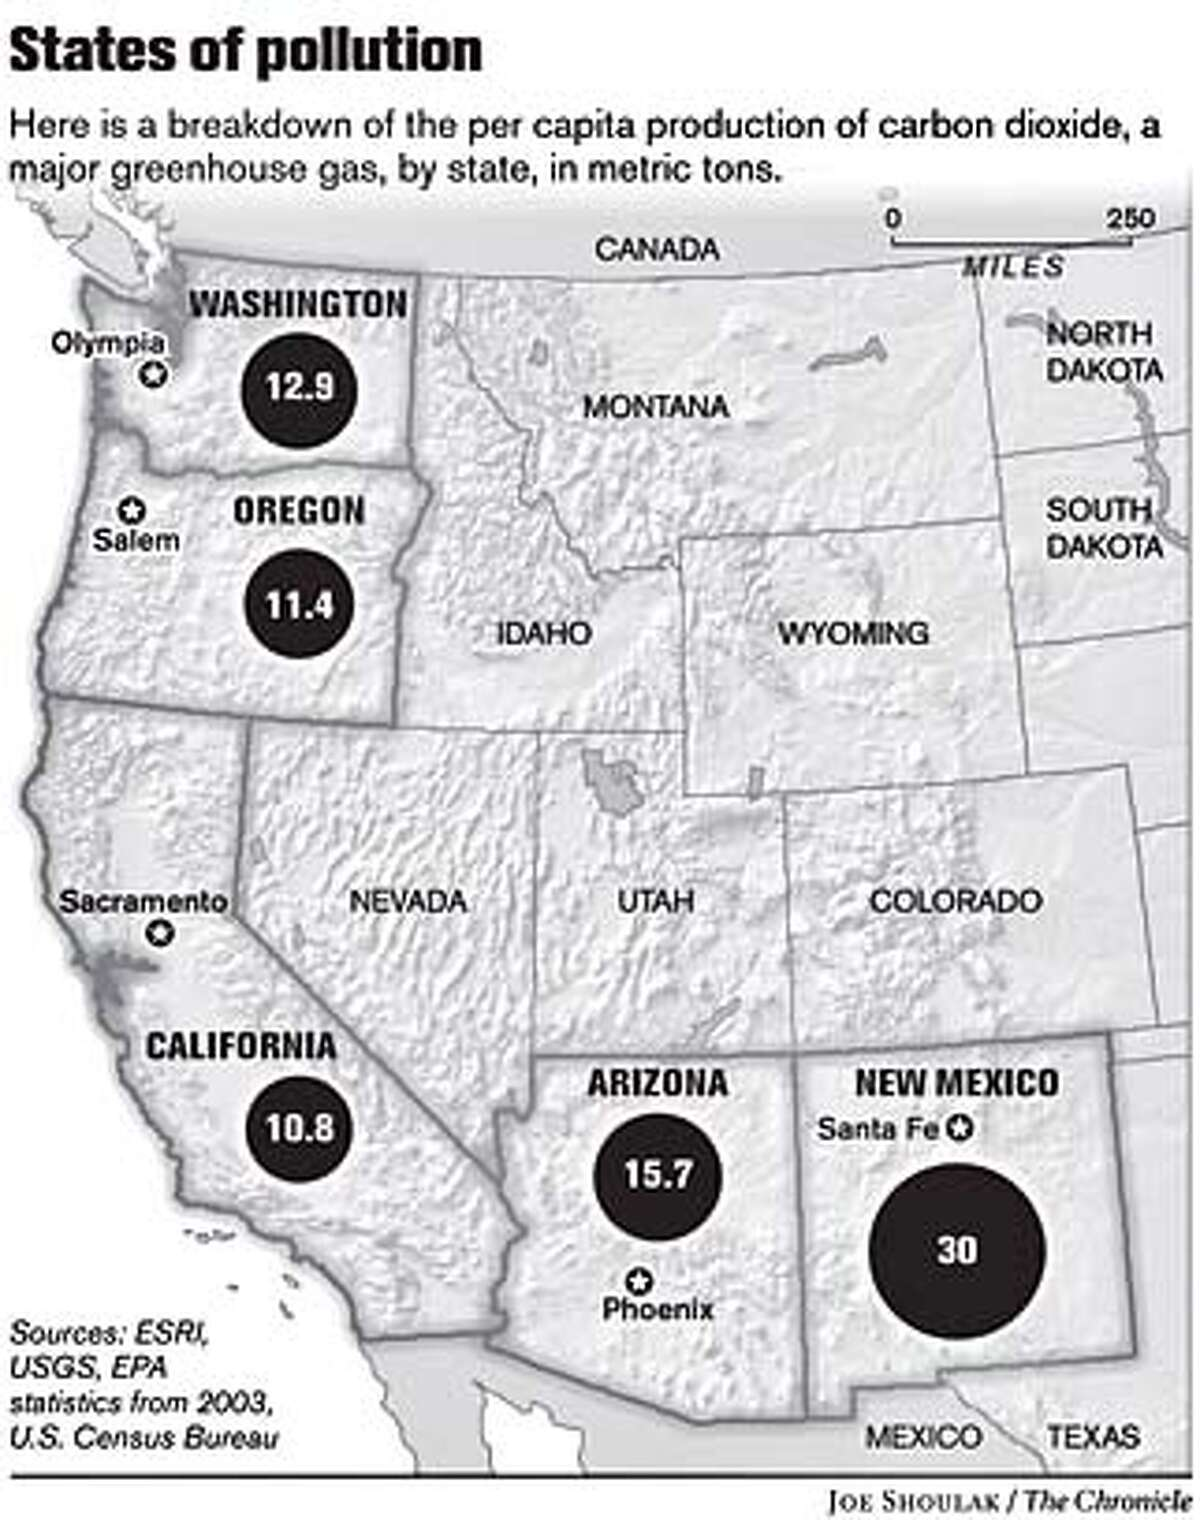 States of Pollution. Chronicle graphic by Joe Shoulak